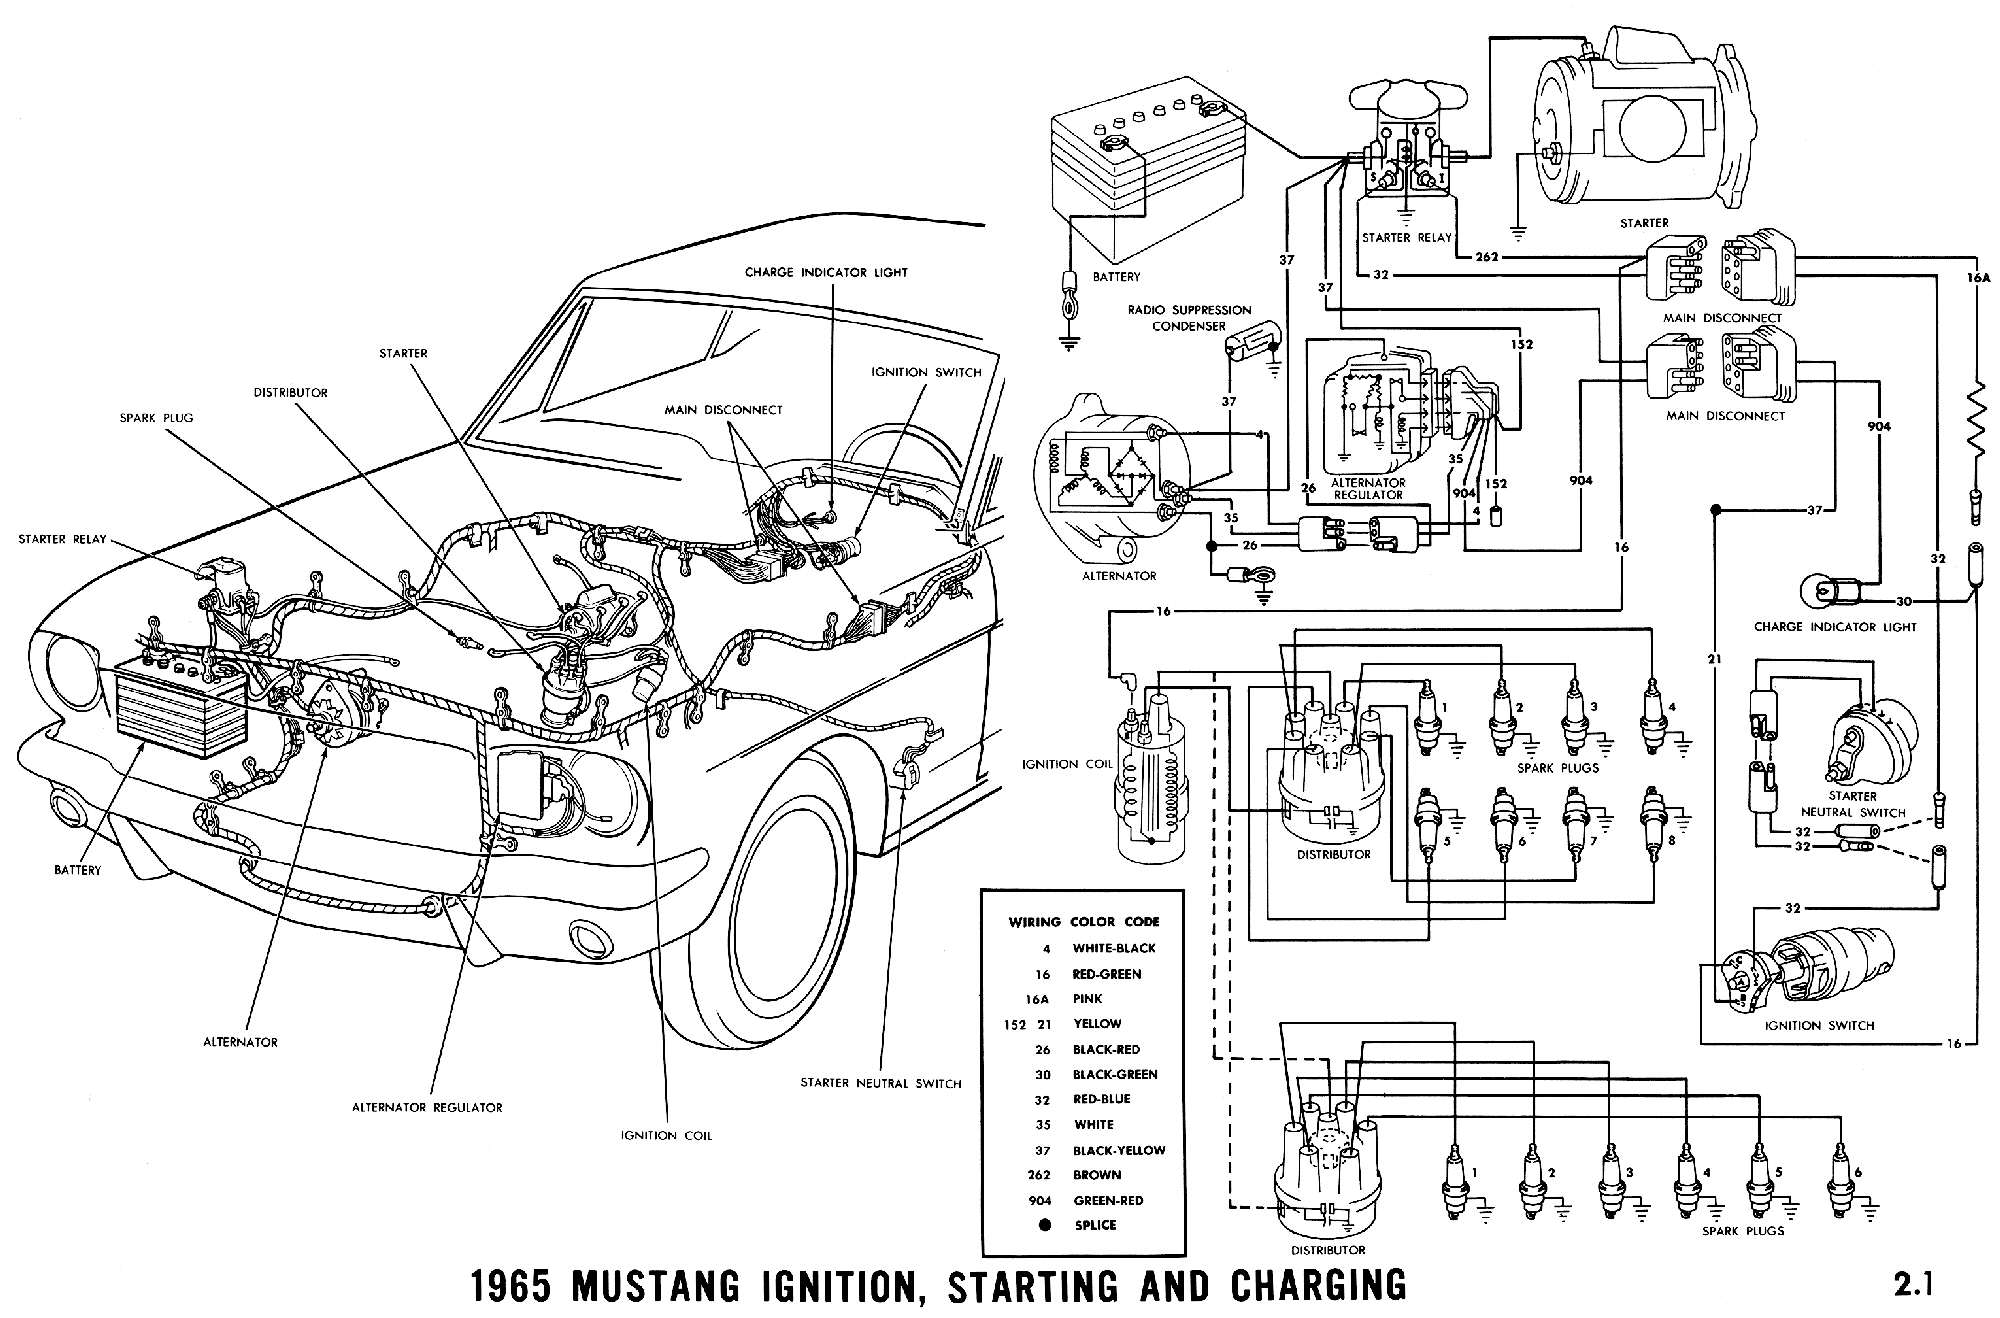 1965 mustang wiring diagrams average joe restoration 1988 Mustang Engine 4Clder 1965 mustang ignition, starting and charging pictorial and schematic